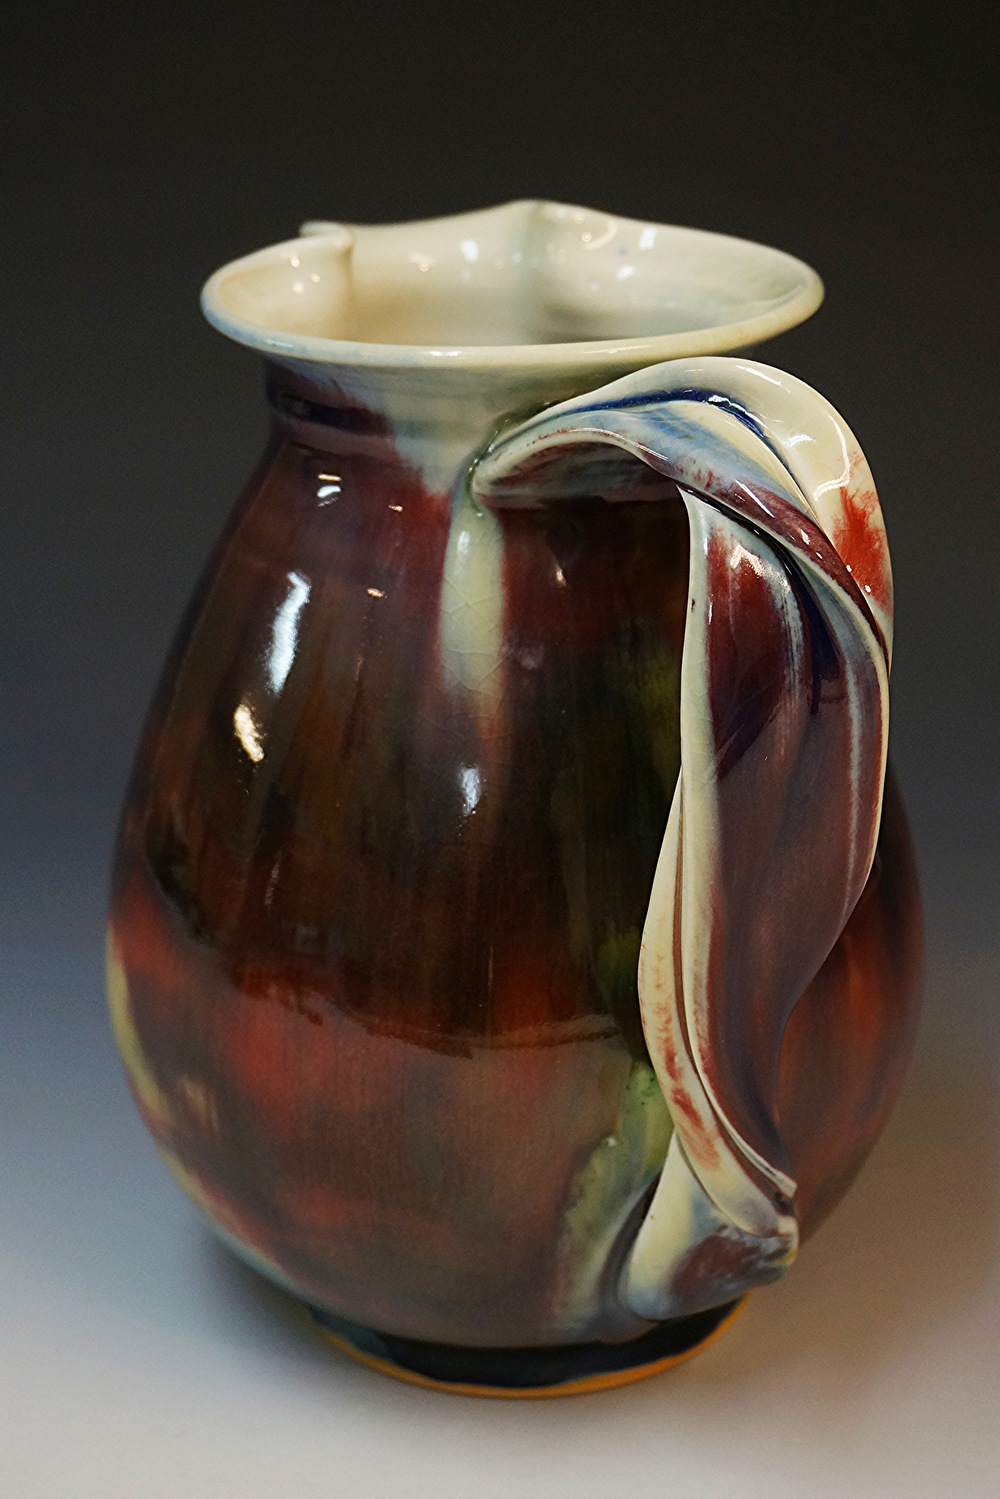 I've also applied this new handle design, with some beautiful results, to my large pitchers. The copper red glazes flow beautifully along it's line, creating truly unique and stunning effects.